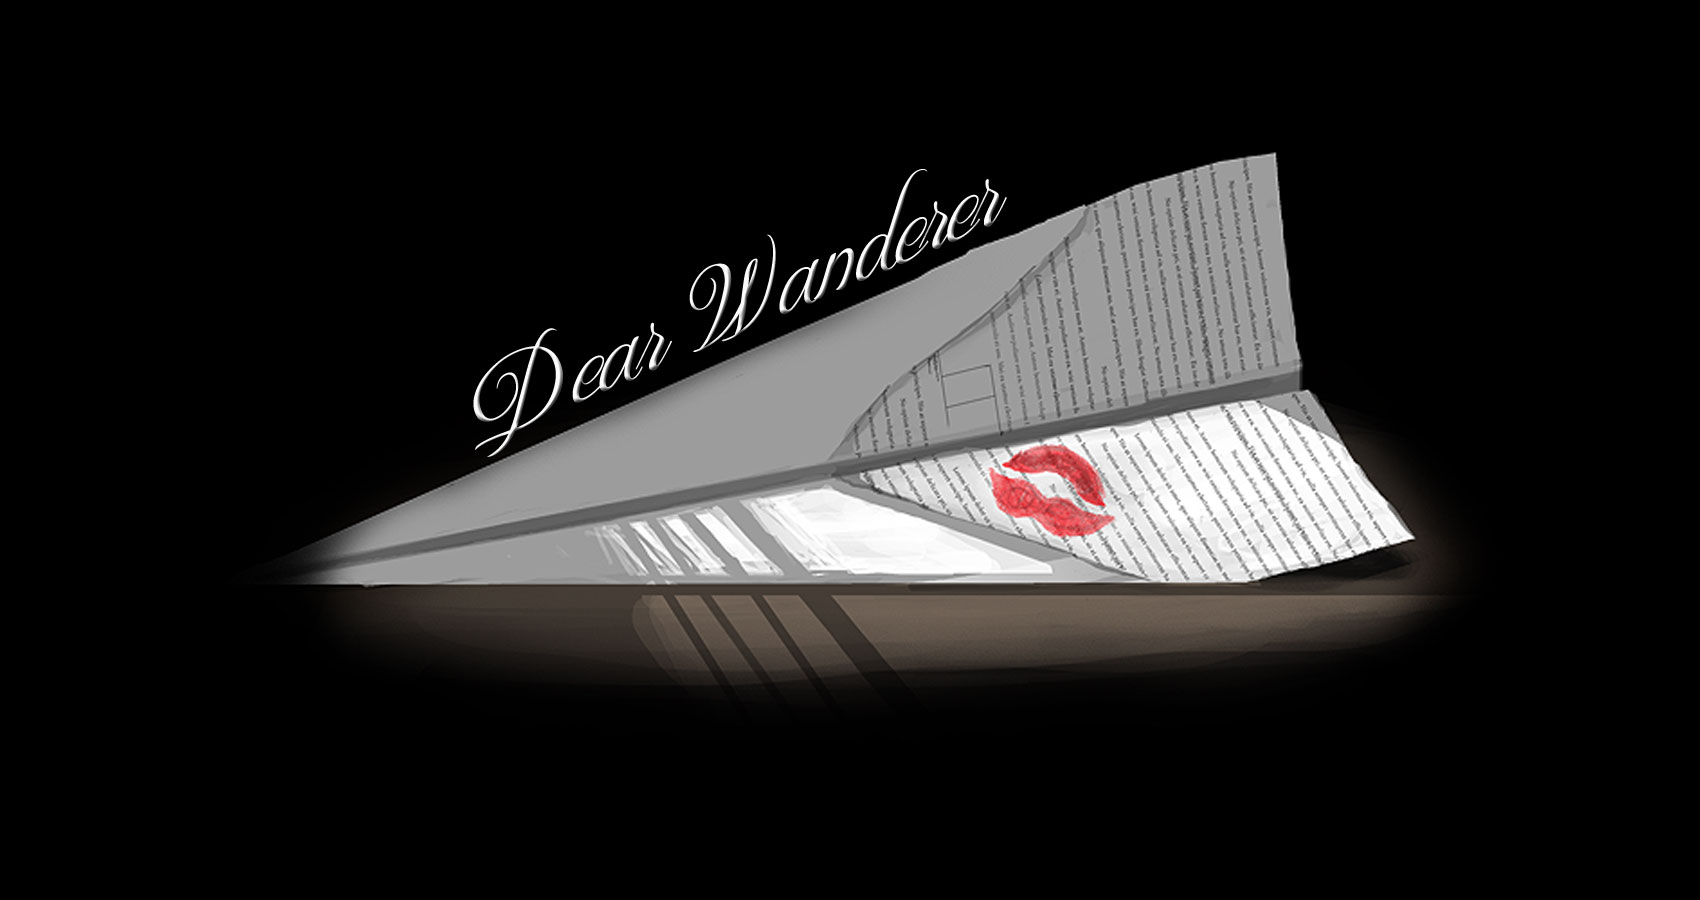 Dear Wanderer, by Robbie Masso at Spillwords.com